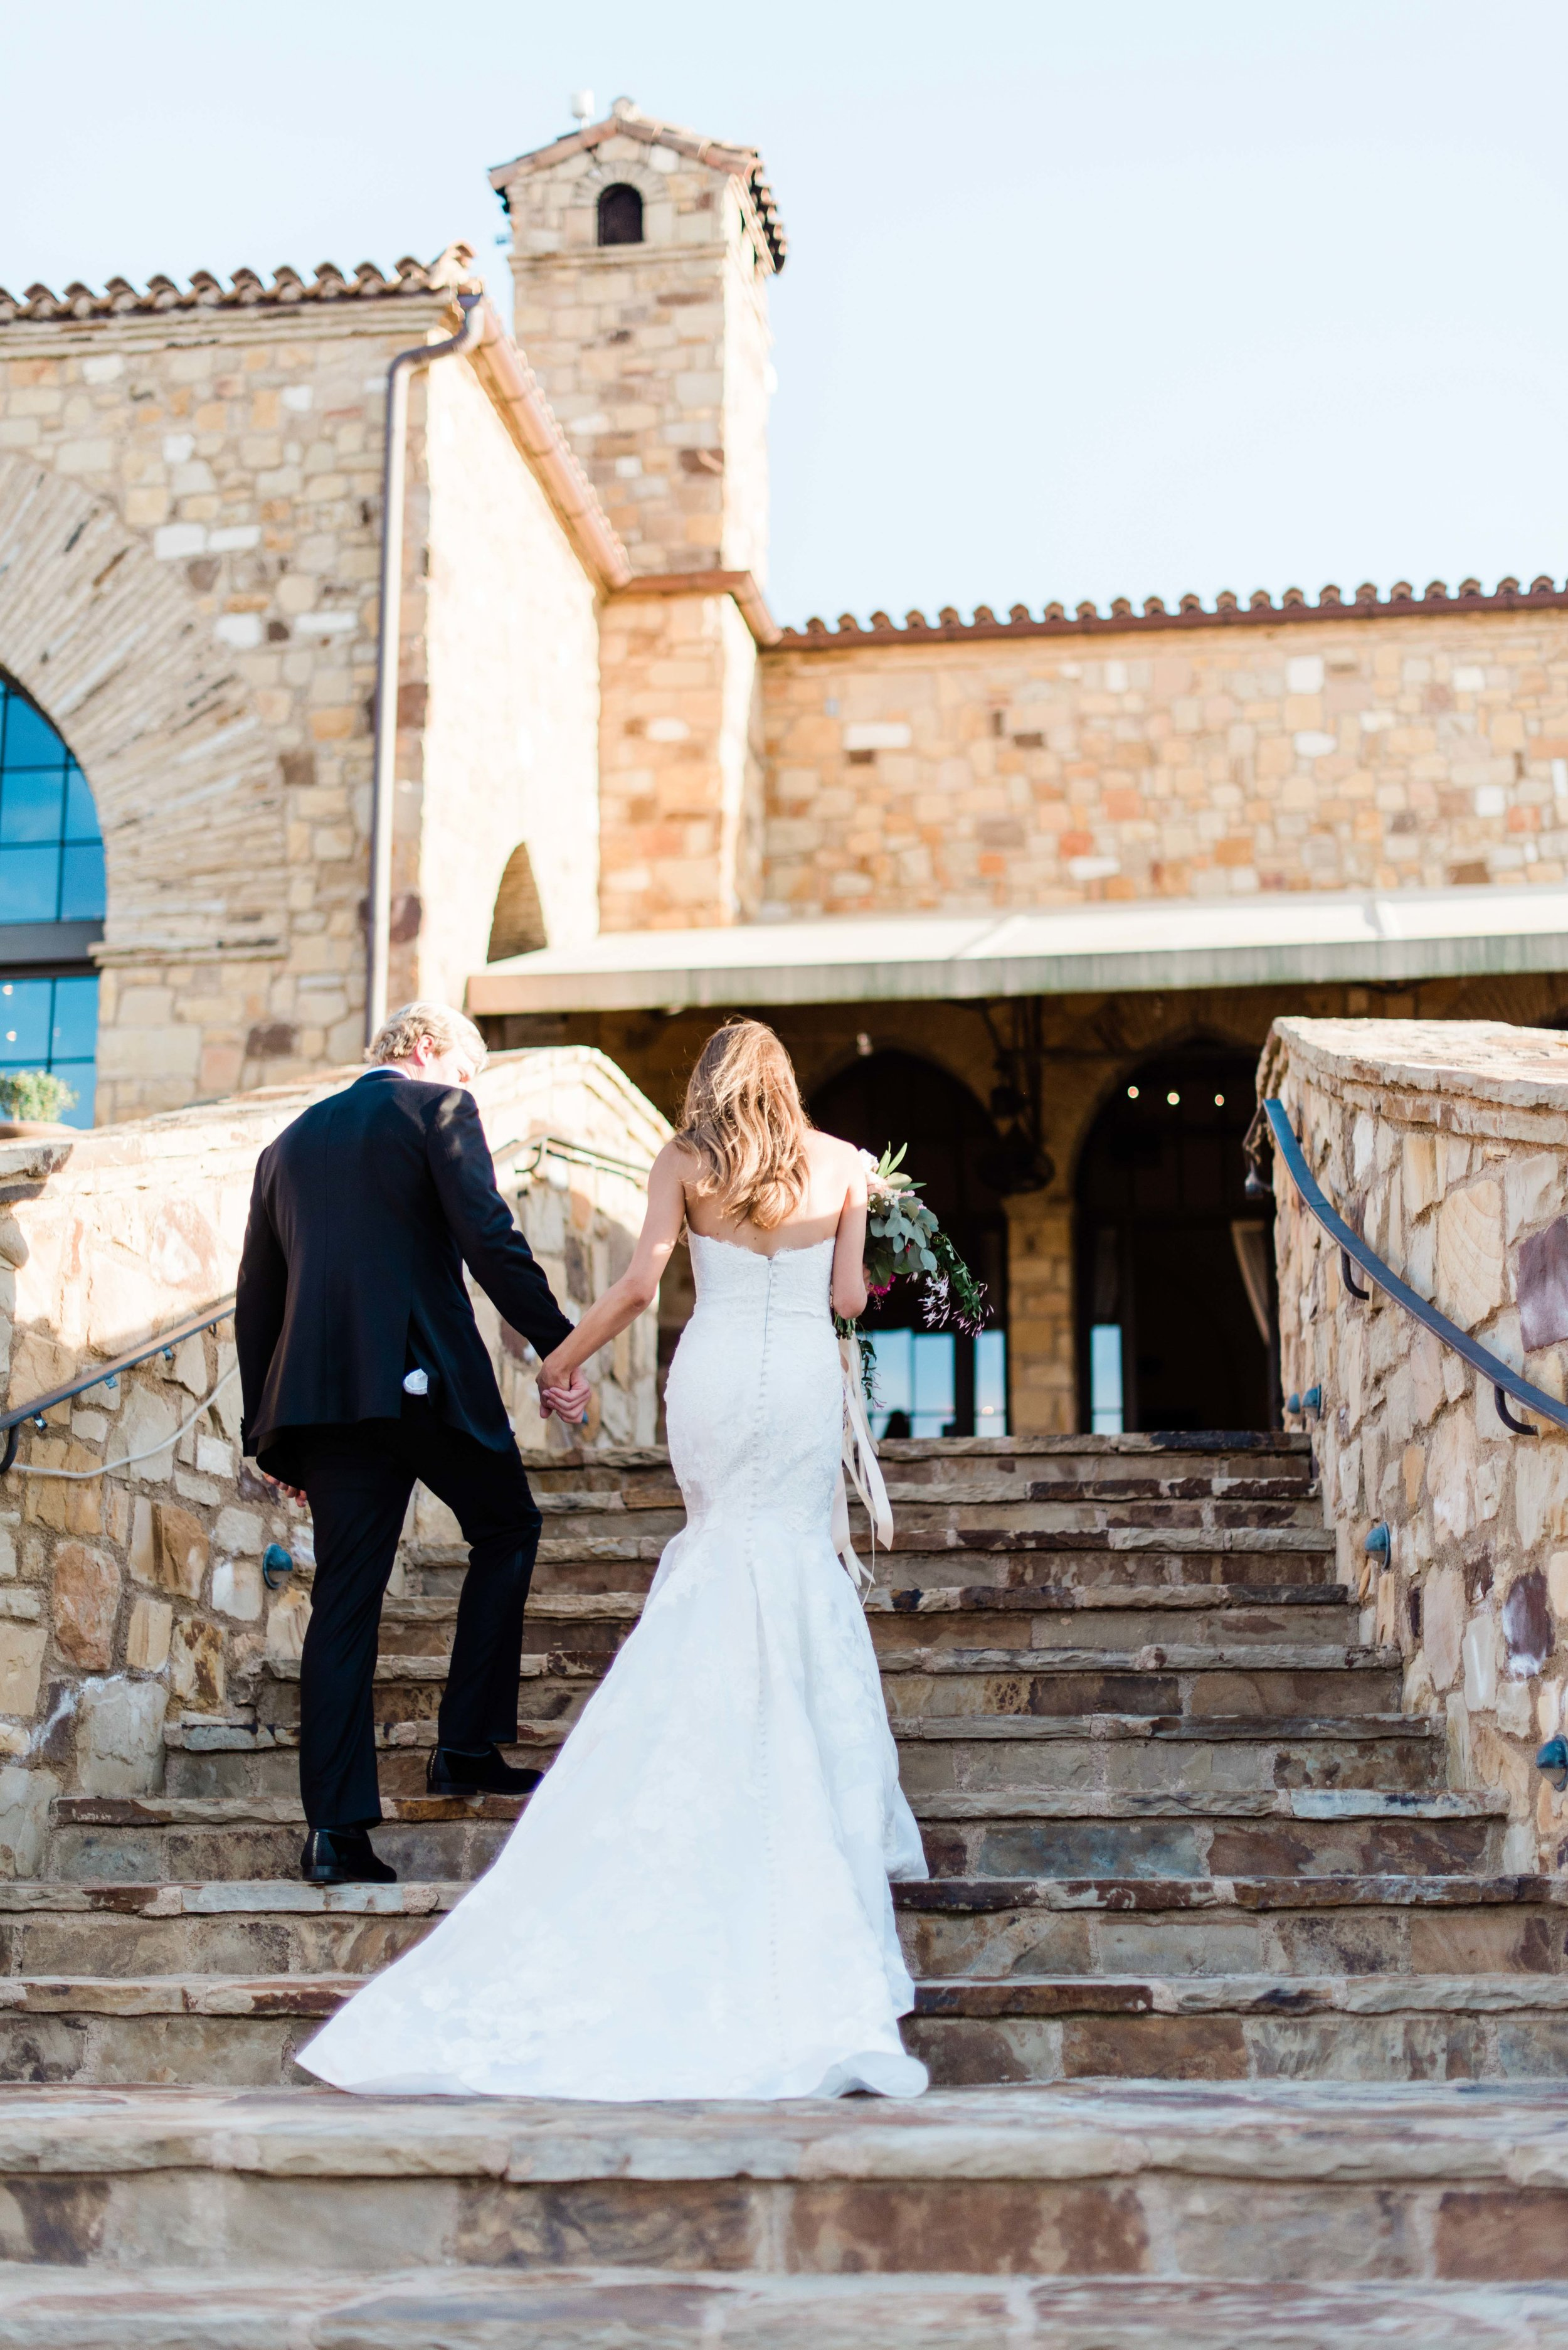 Escondido-Golf_Lake-Club-Hill-Country-Houston-Wedding-Photographer-Best-Top-Luxury-Destination-Engagements-Portrait-Austin-Photography-30.jpg